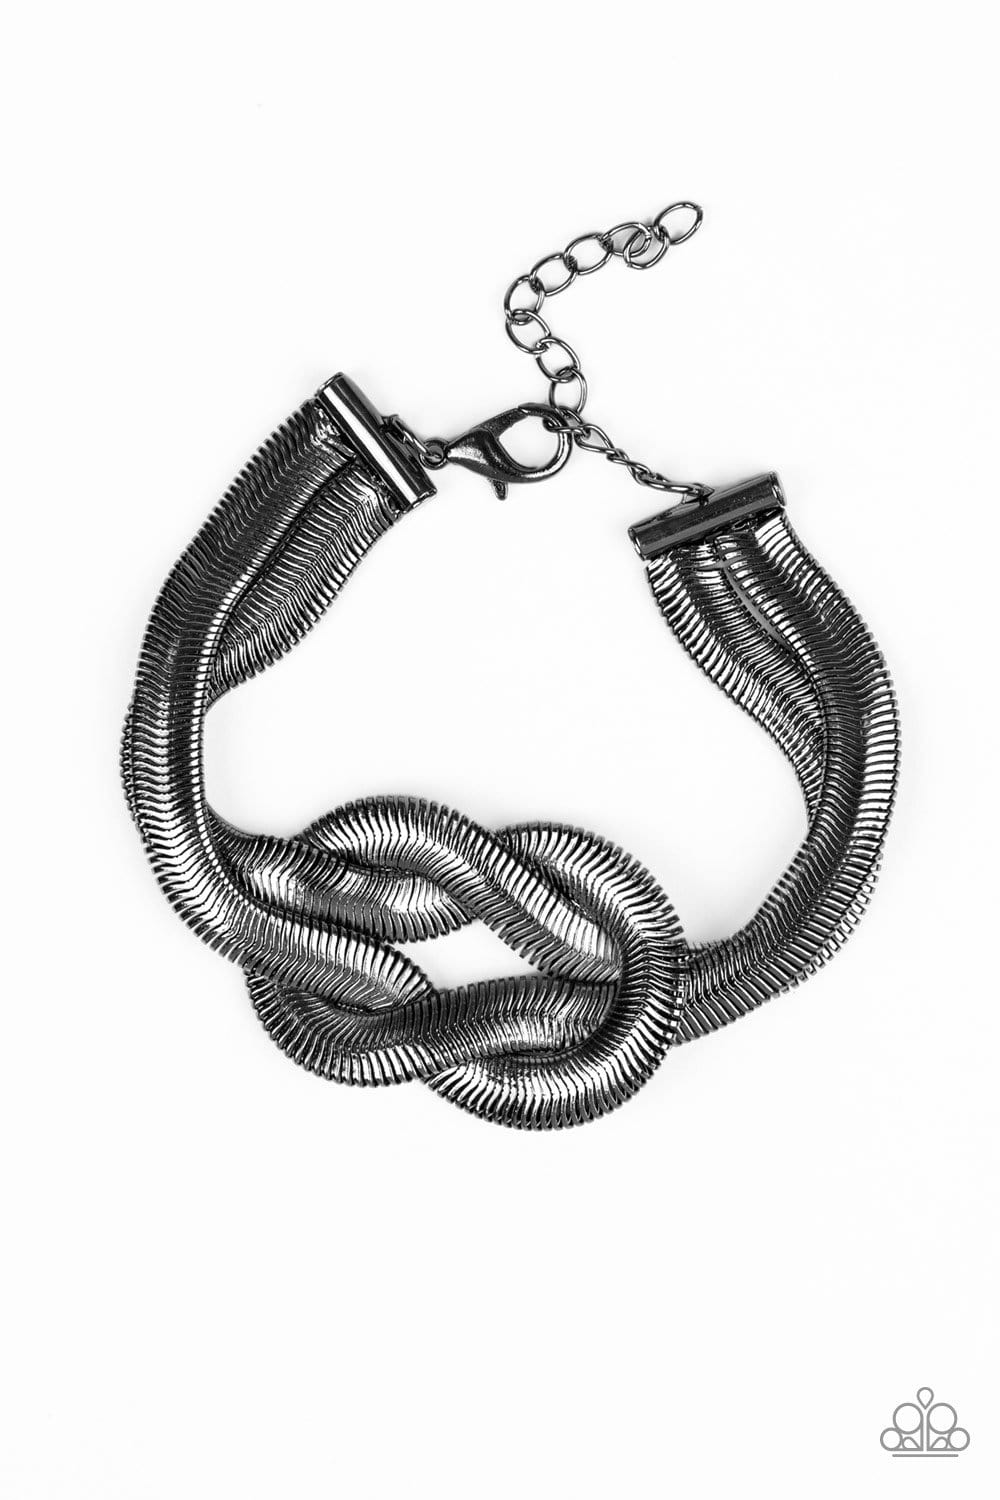 Paparazzi: To The Max - Black Herringbone Chain Knot Bracelet